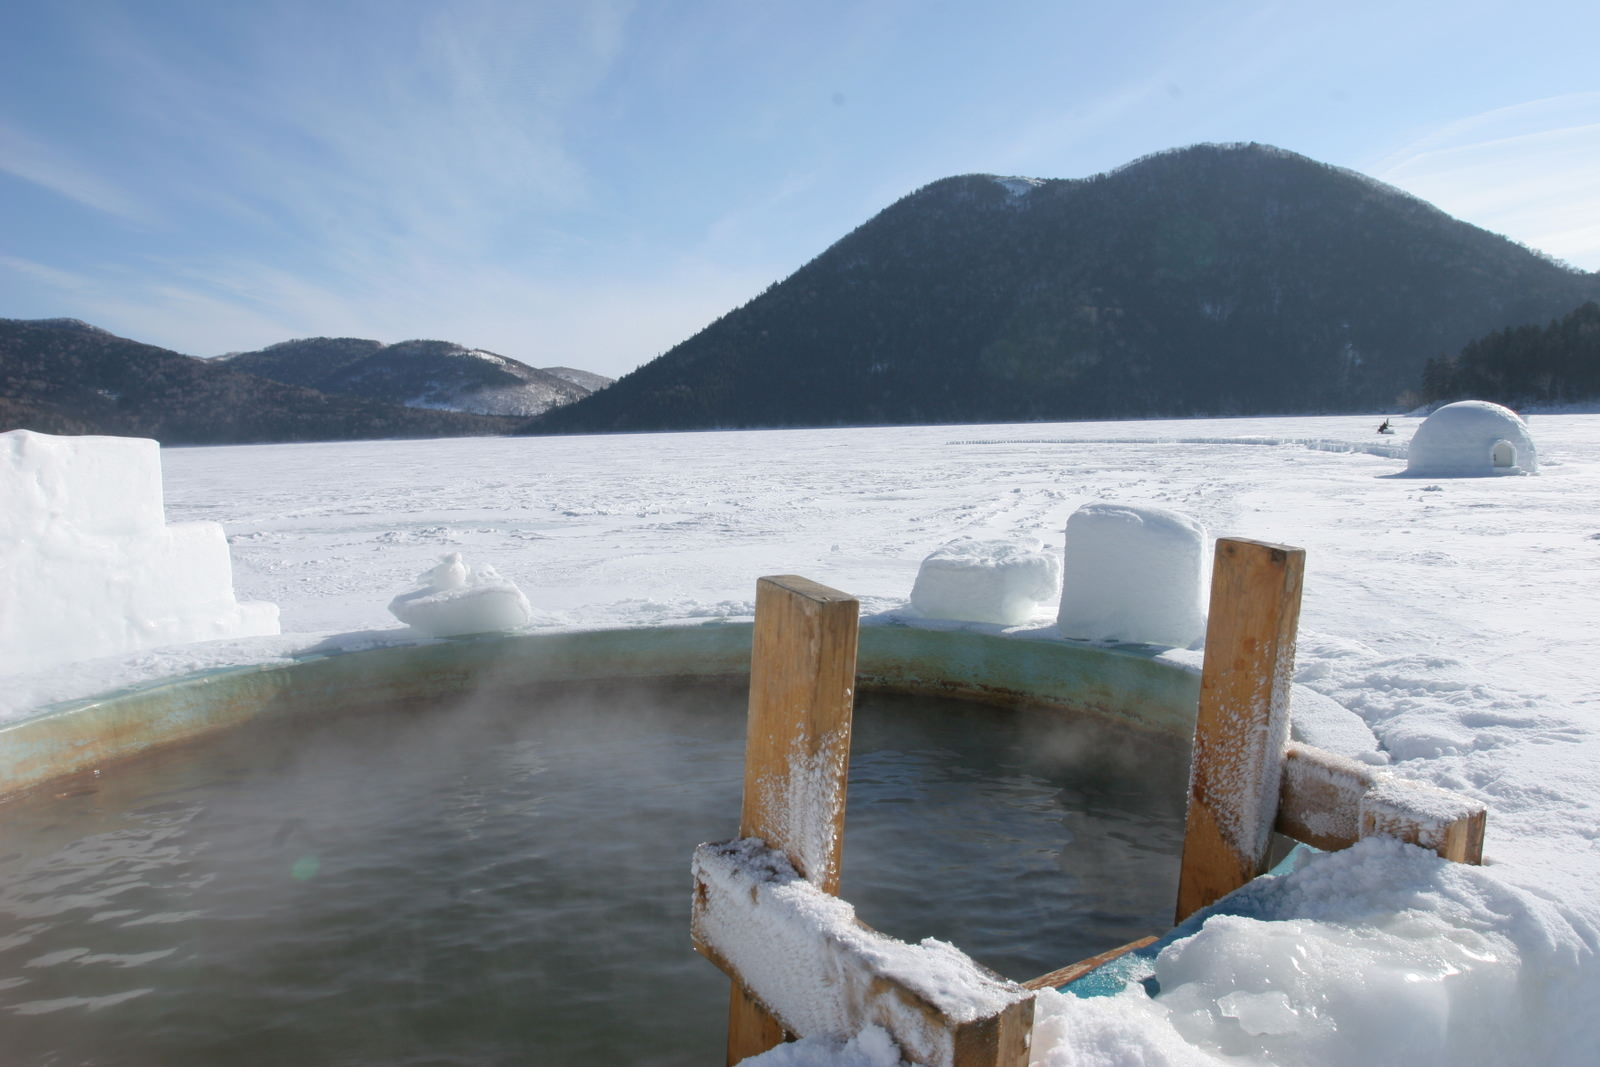 Lake Shikaribetsu Kotan – Hot spring on Ice